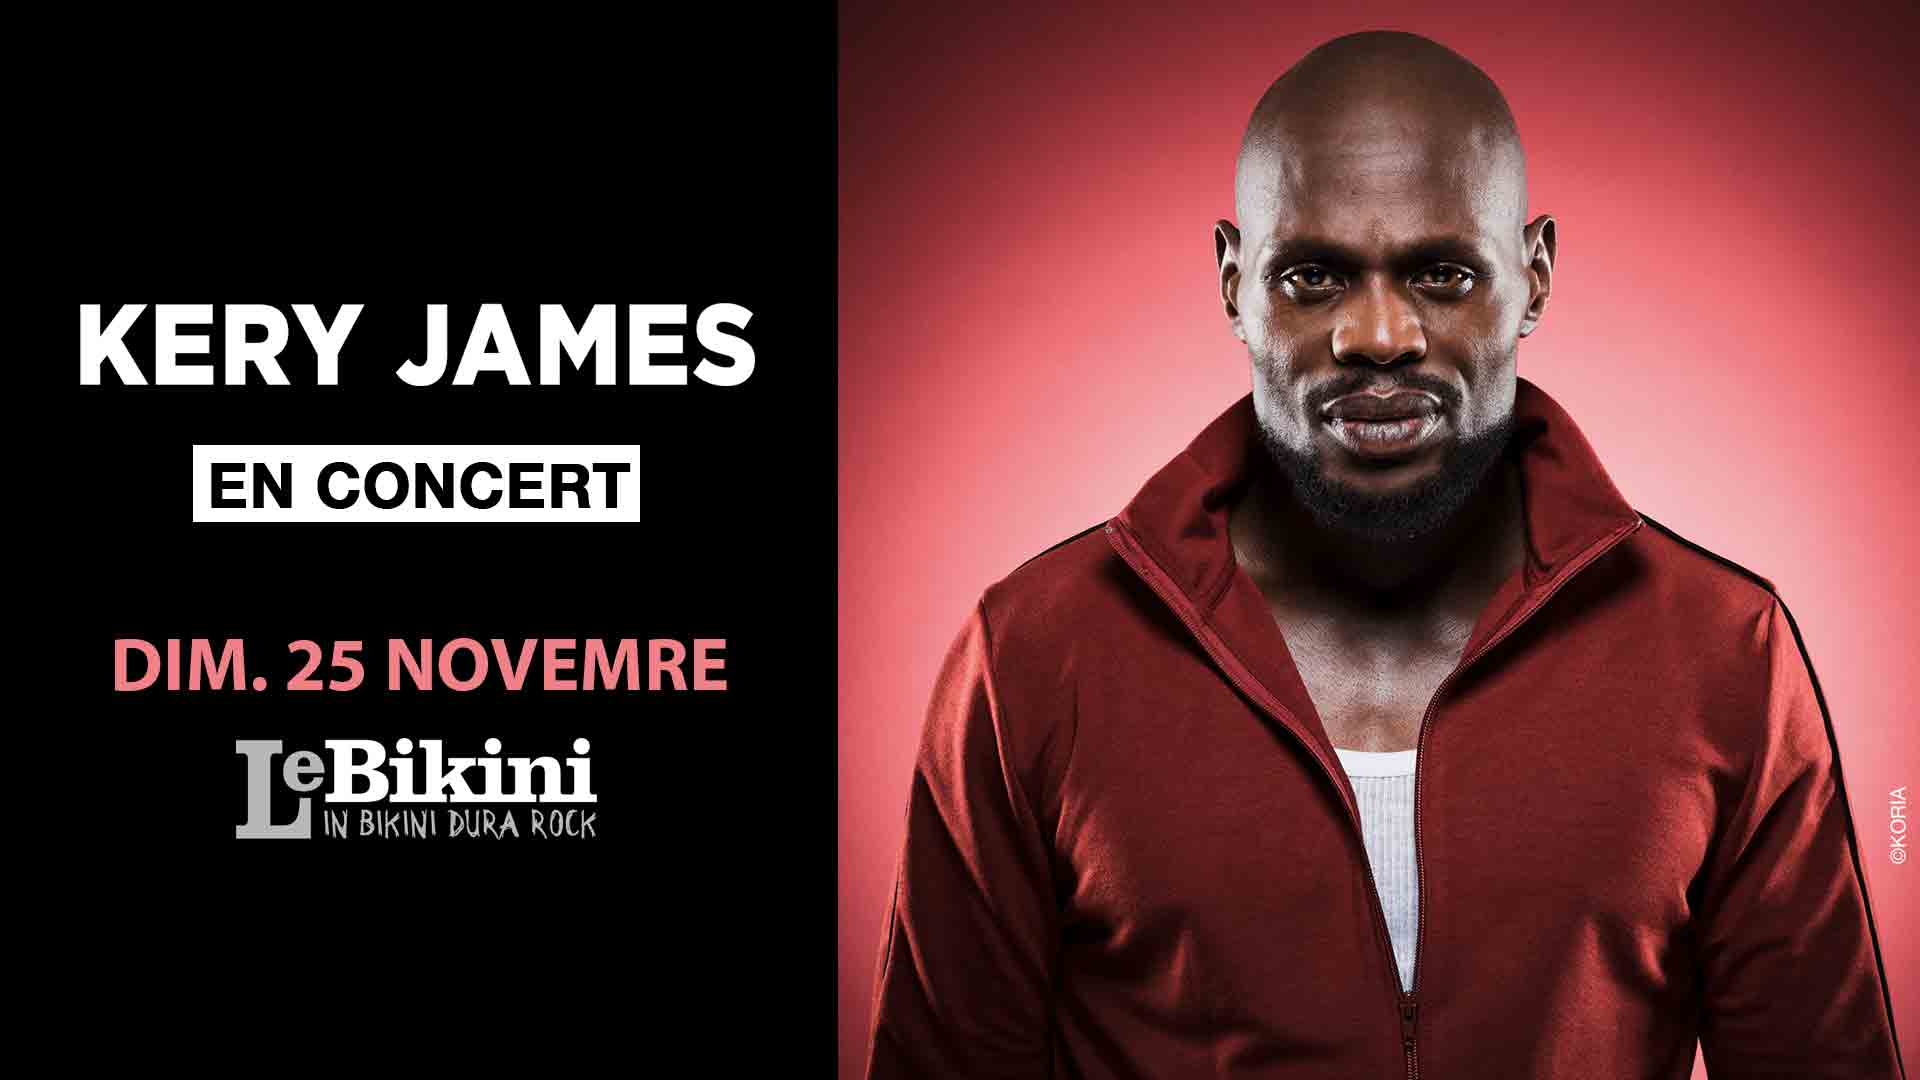 image kery james concert toulouse 2018